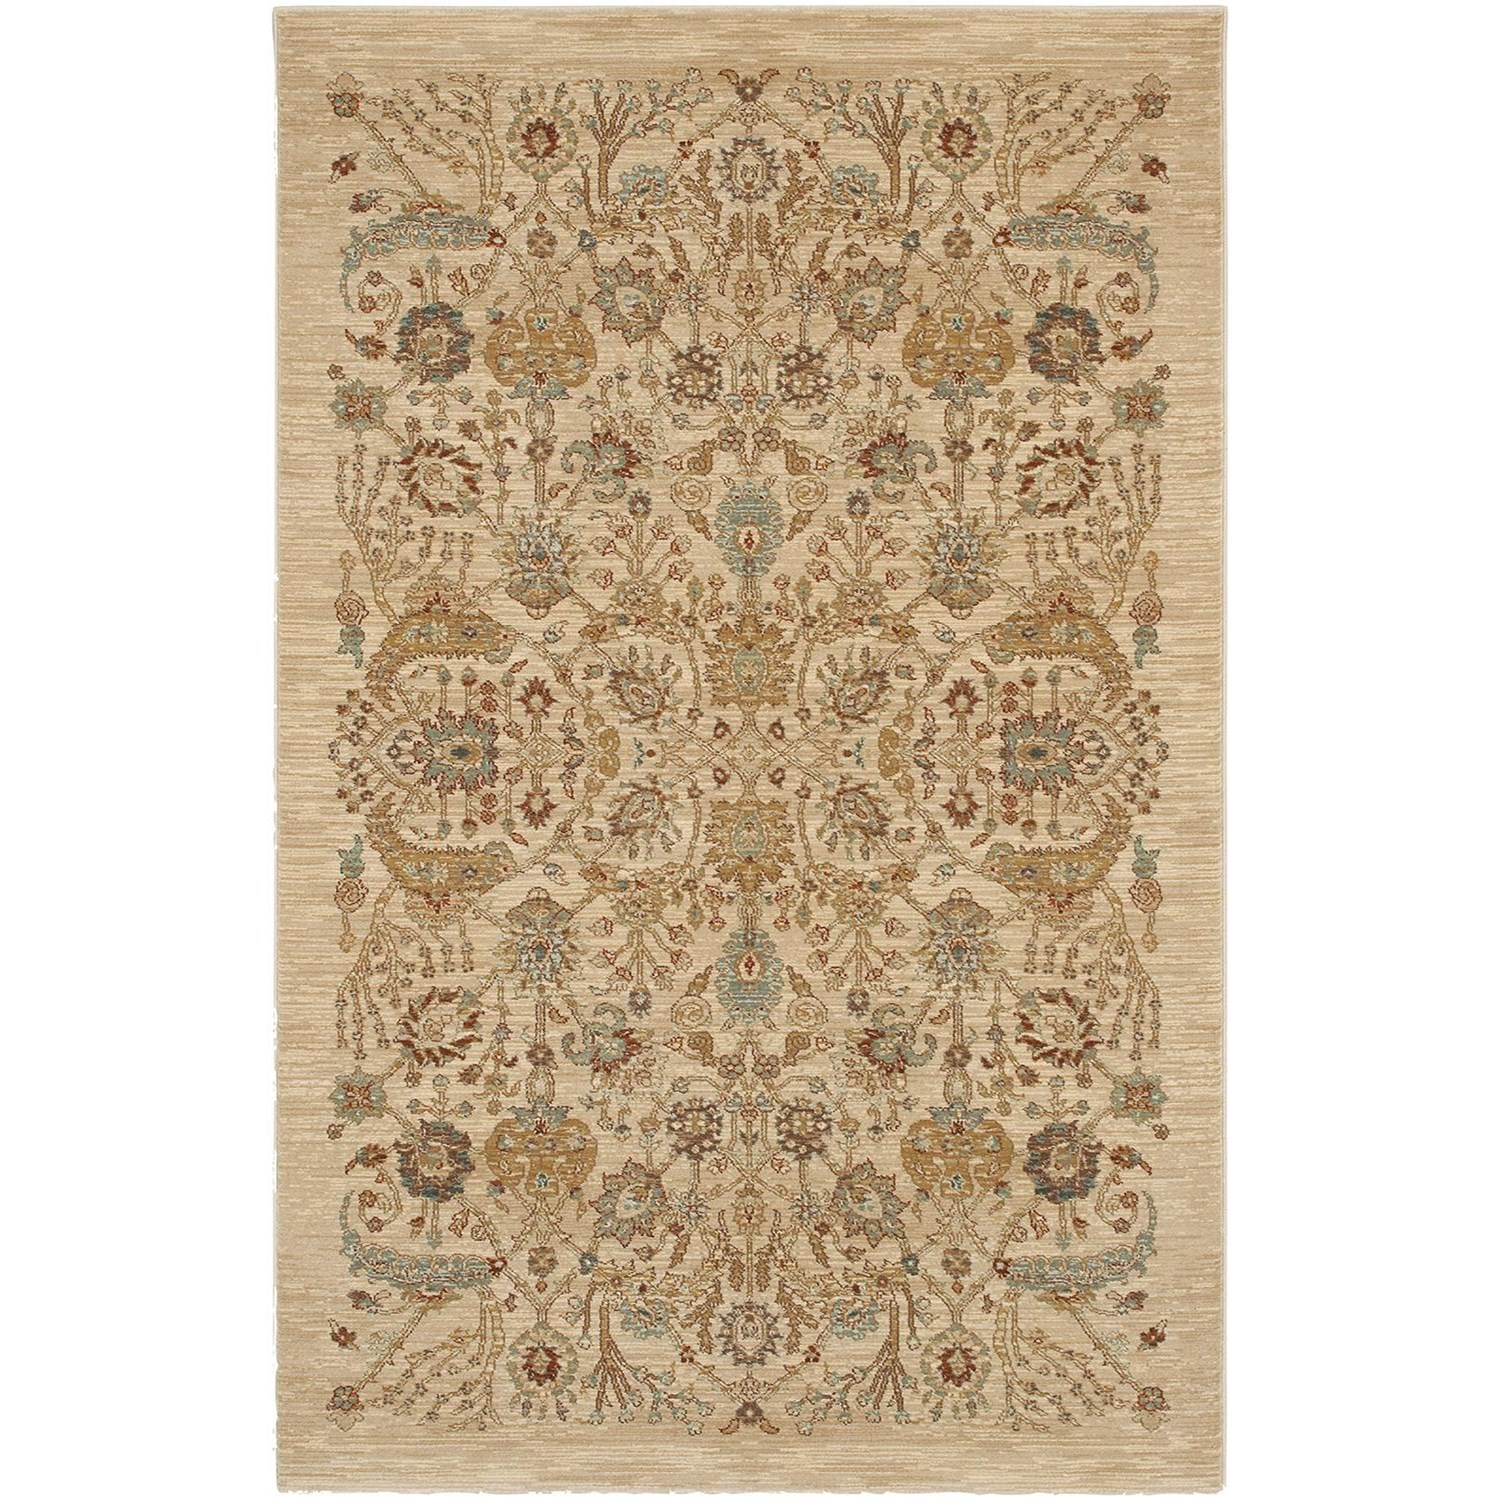 Shapura 10'x14' Bel Canto Rug by Karastan Rugs at Alison Craig Home Furnishings